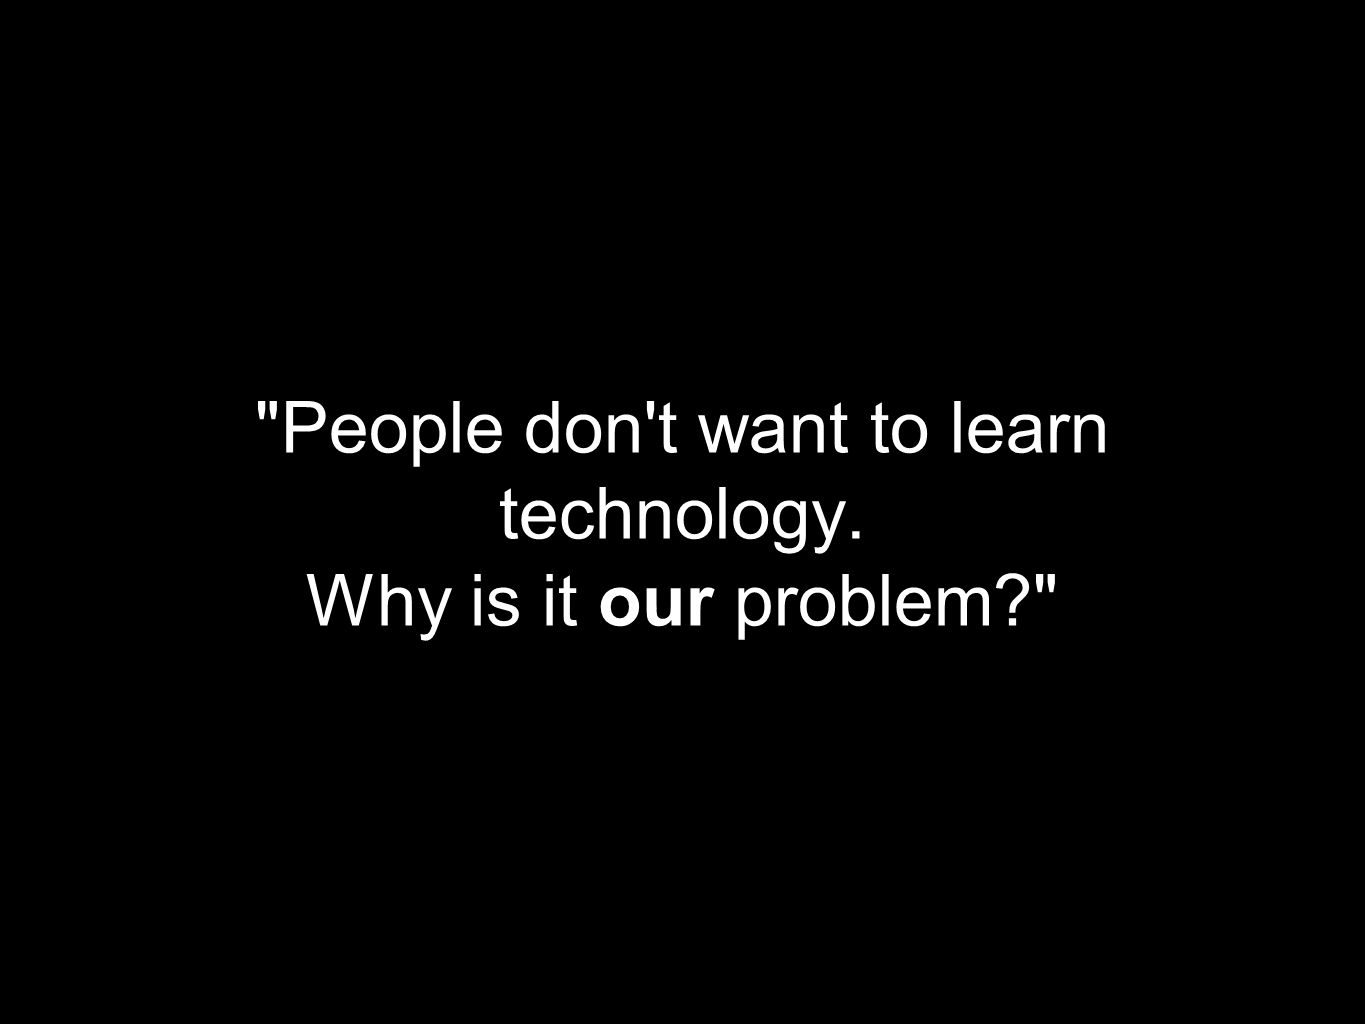 People don t want to learn technology. Why is it our problem